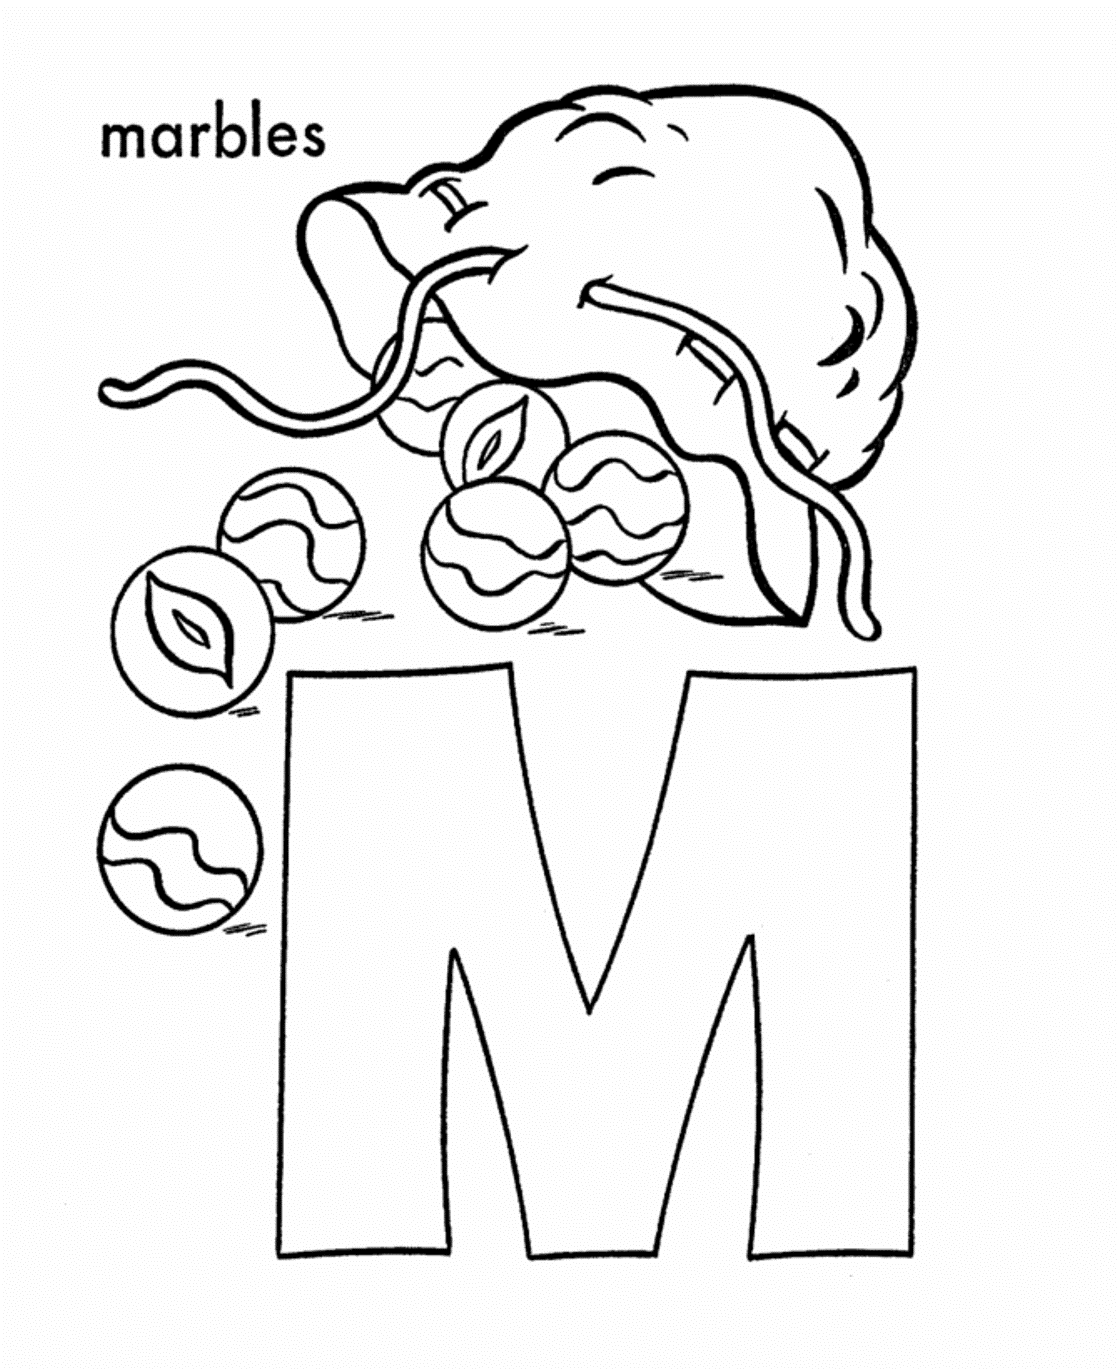 1119x1369 Best Of Marbles Coloring Page Gallery Printable Coloring Sheet